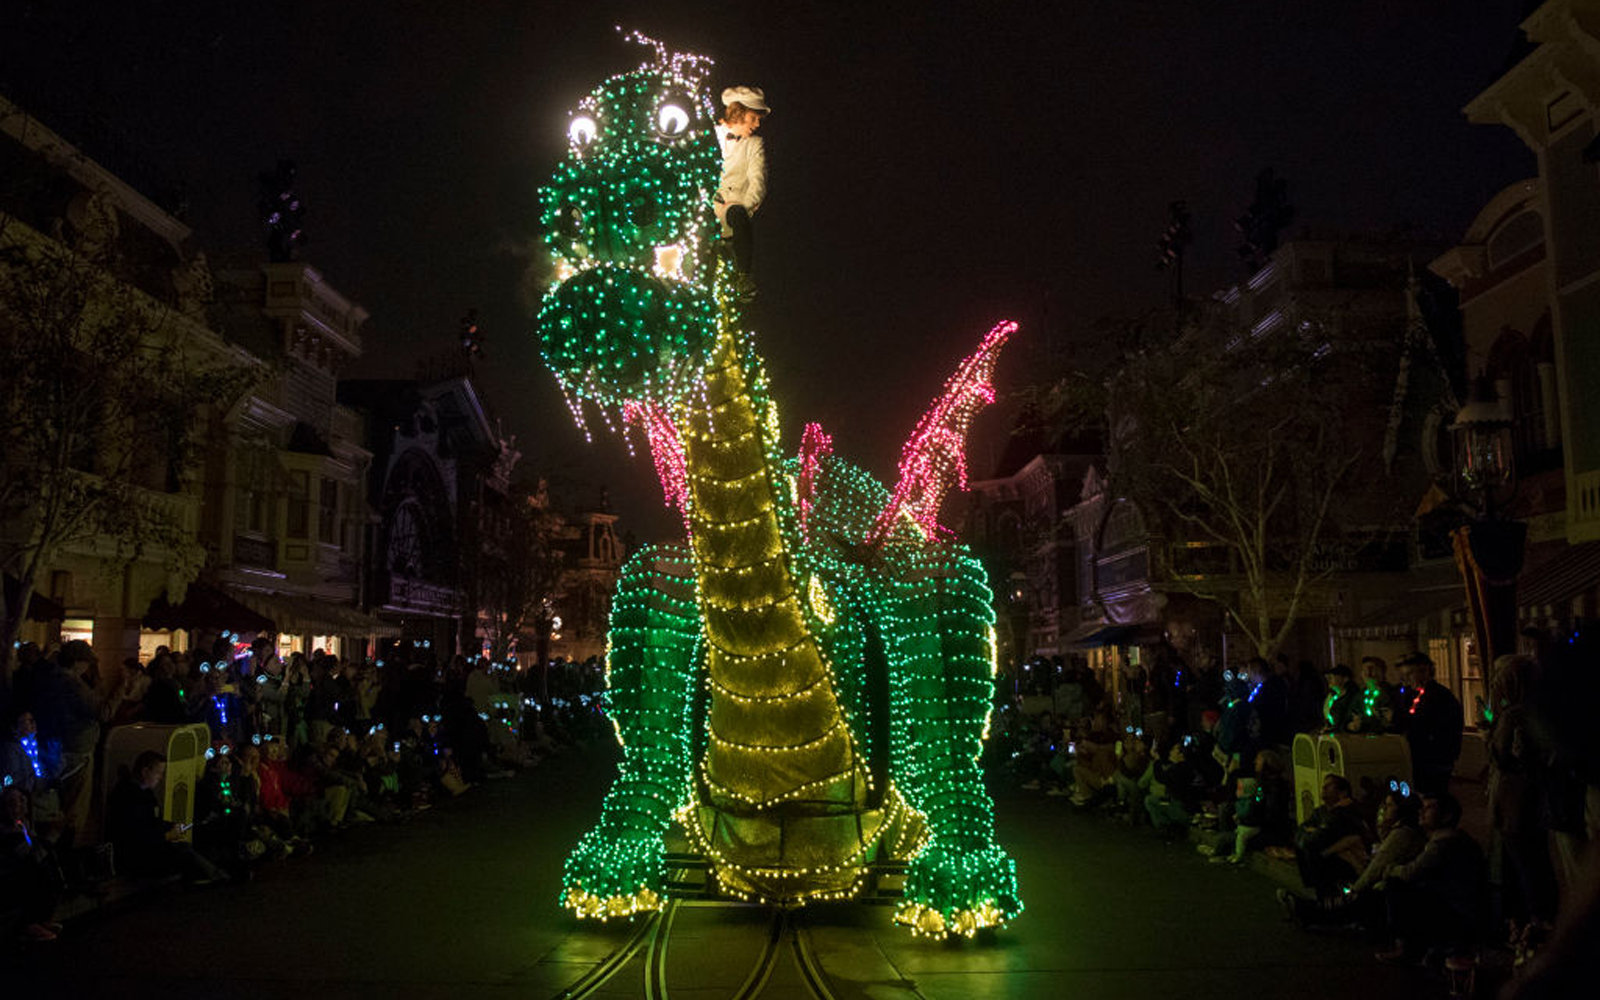 This classic Disney parade is returning this summer, but only for 8 weeks